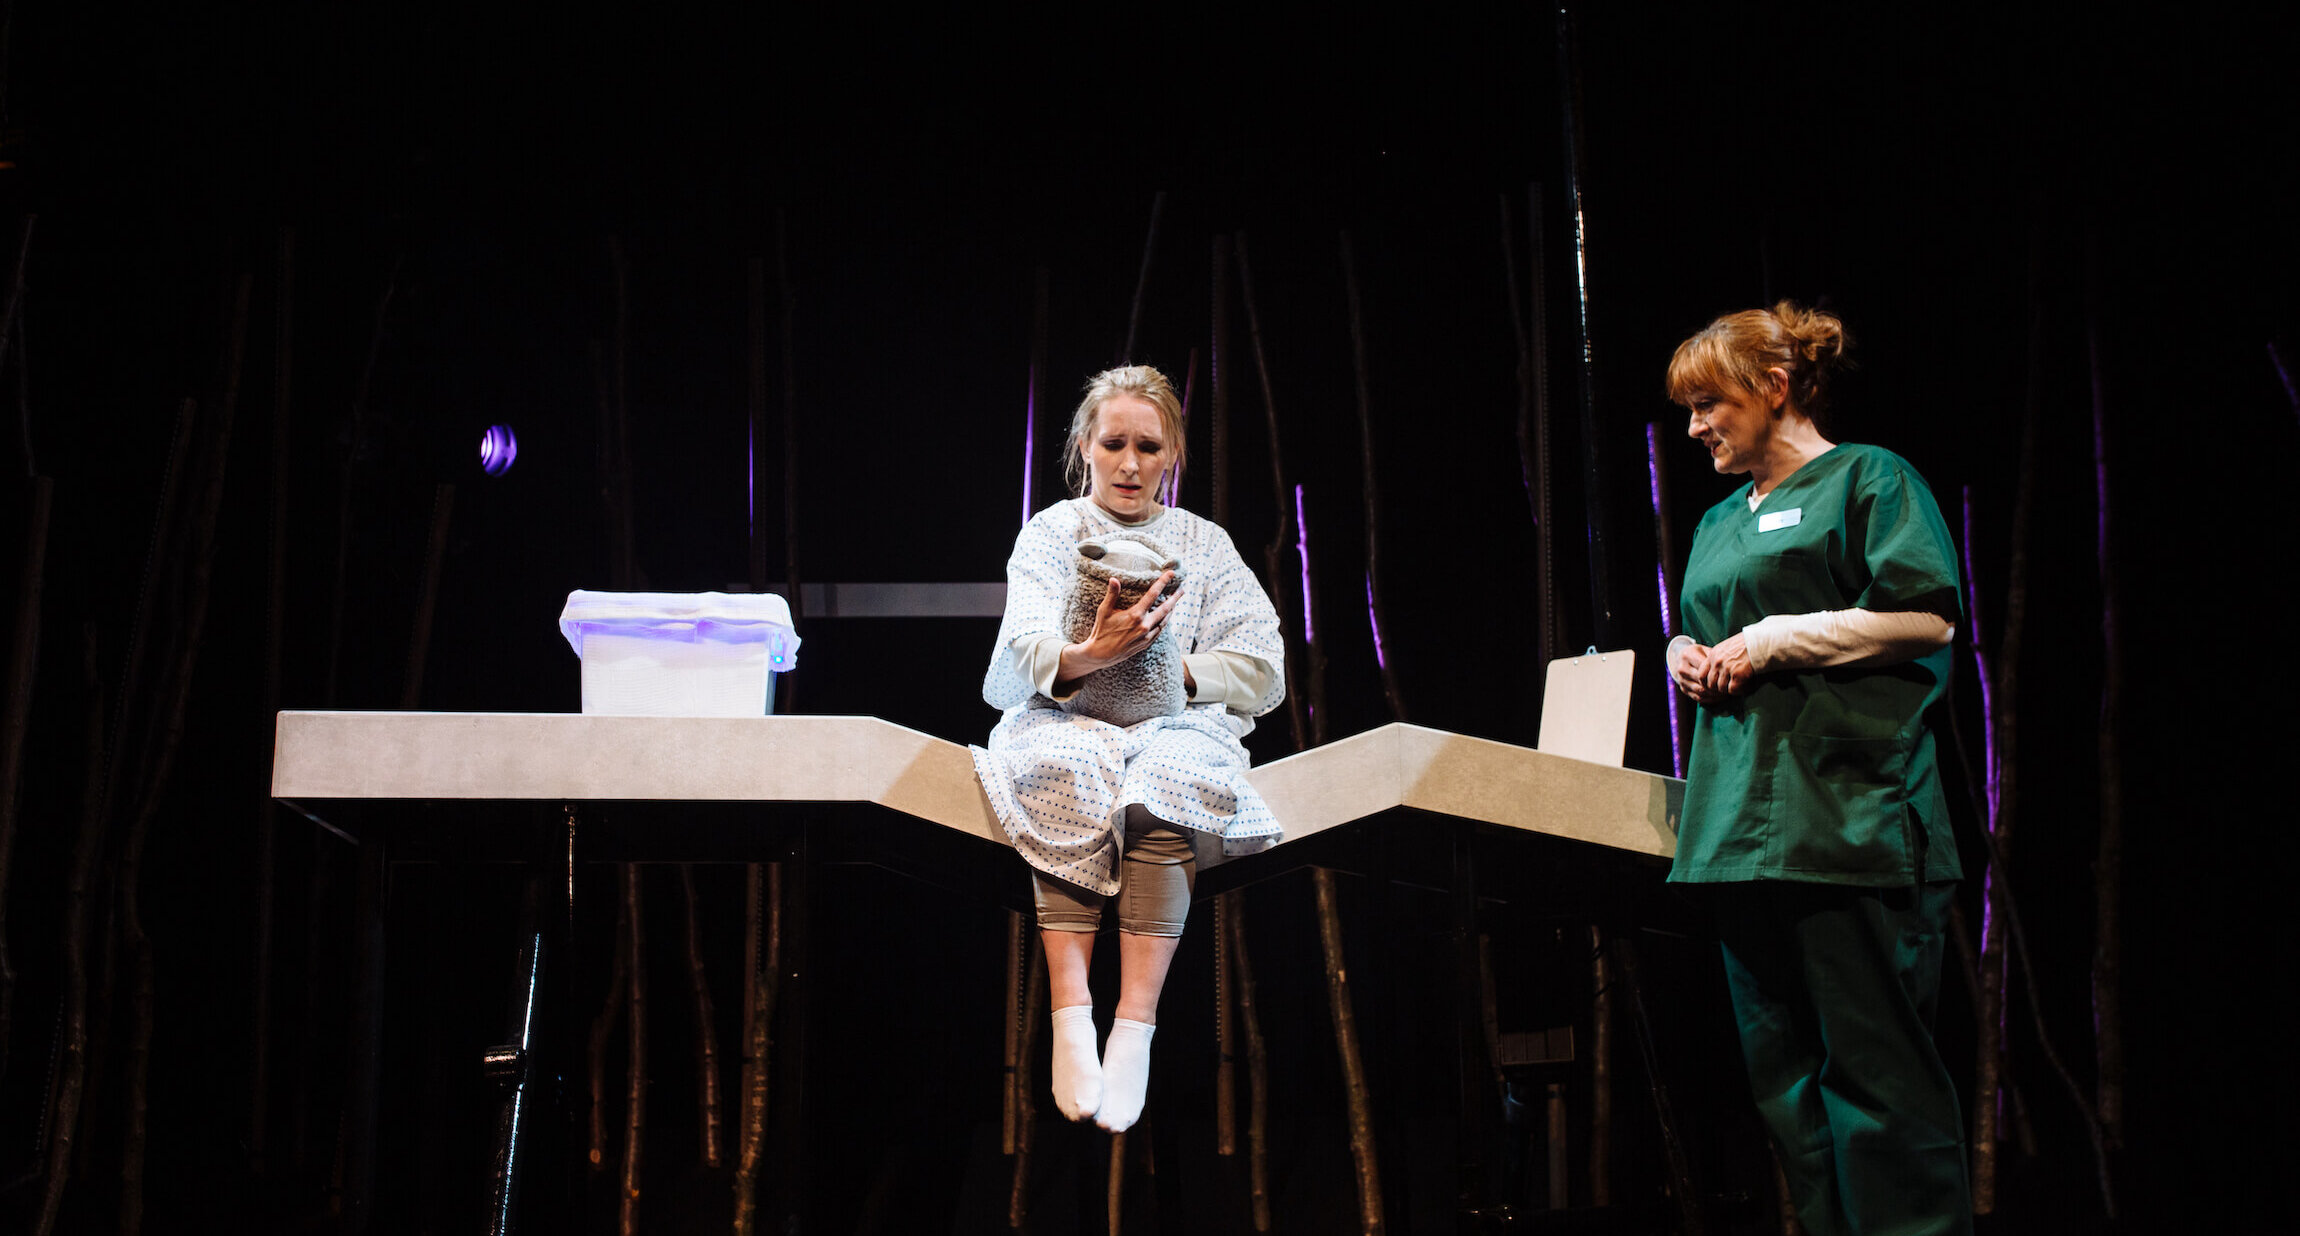 Hope & Joy production image showing a woman in green scrubs standing next to woman in hospital gown sitting on the edge of a bed holding a teddy